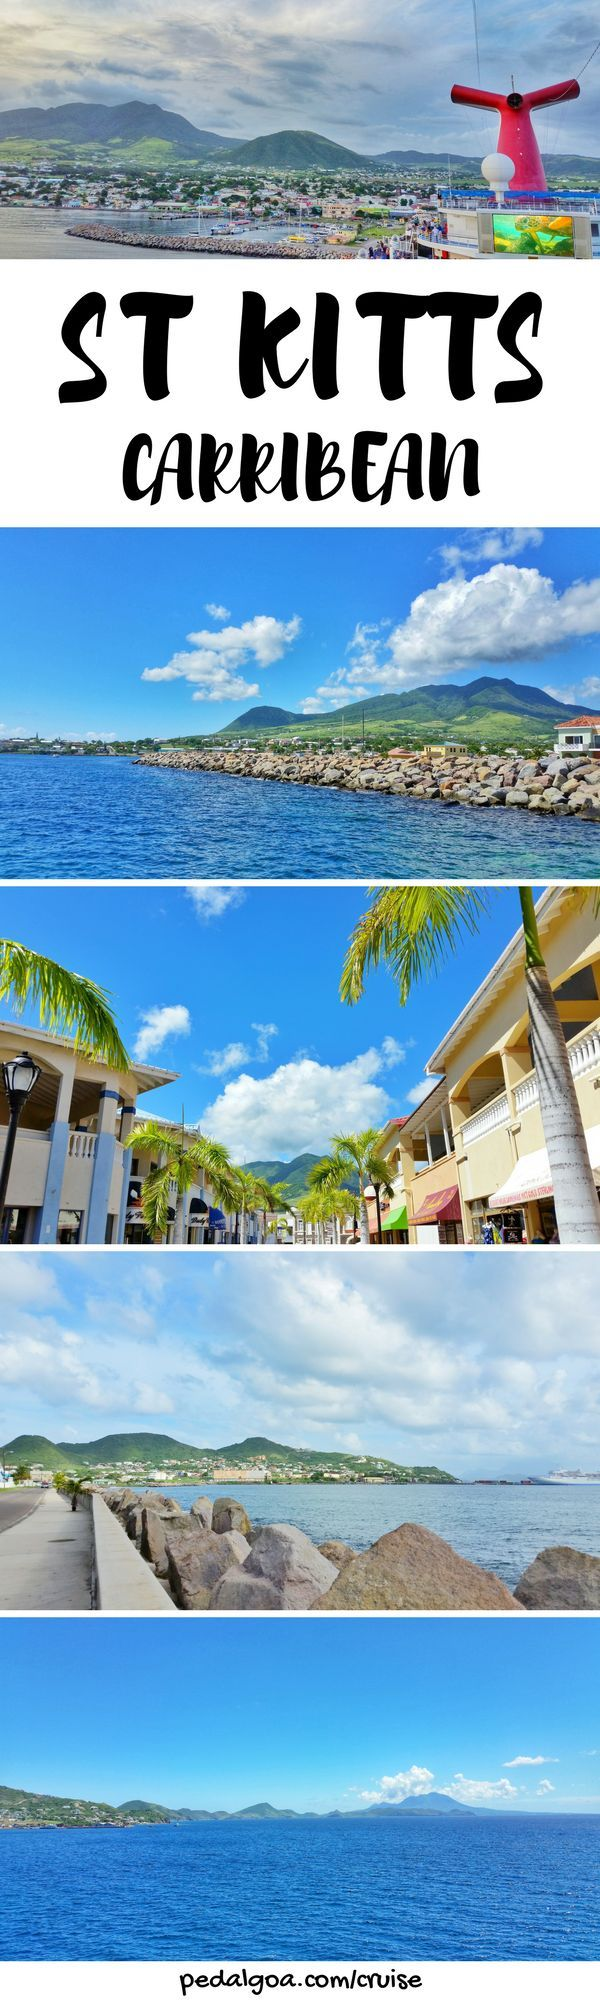 Caribbean cruise to St. Kitts. Things to do in St Kitts after excursions, including taking instagram pictures near St Kitts cruise port. You'll pass shopping and food in Basseterre. Budget-friendly island activities after you get back from beaches, resorts, or tours! Cruise tips for your Caribbean cruise to St Kitts that might include Grand Turk, San Juan Puerto Rico, St Maarten, Barbados, St Lucia too.